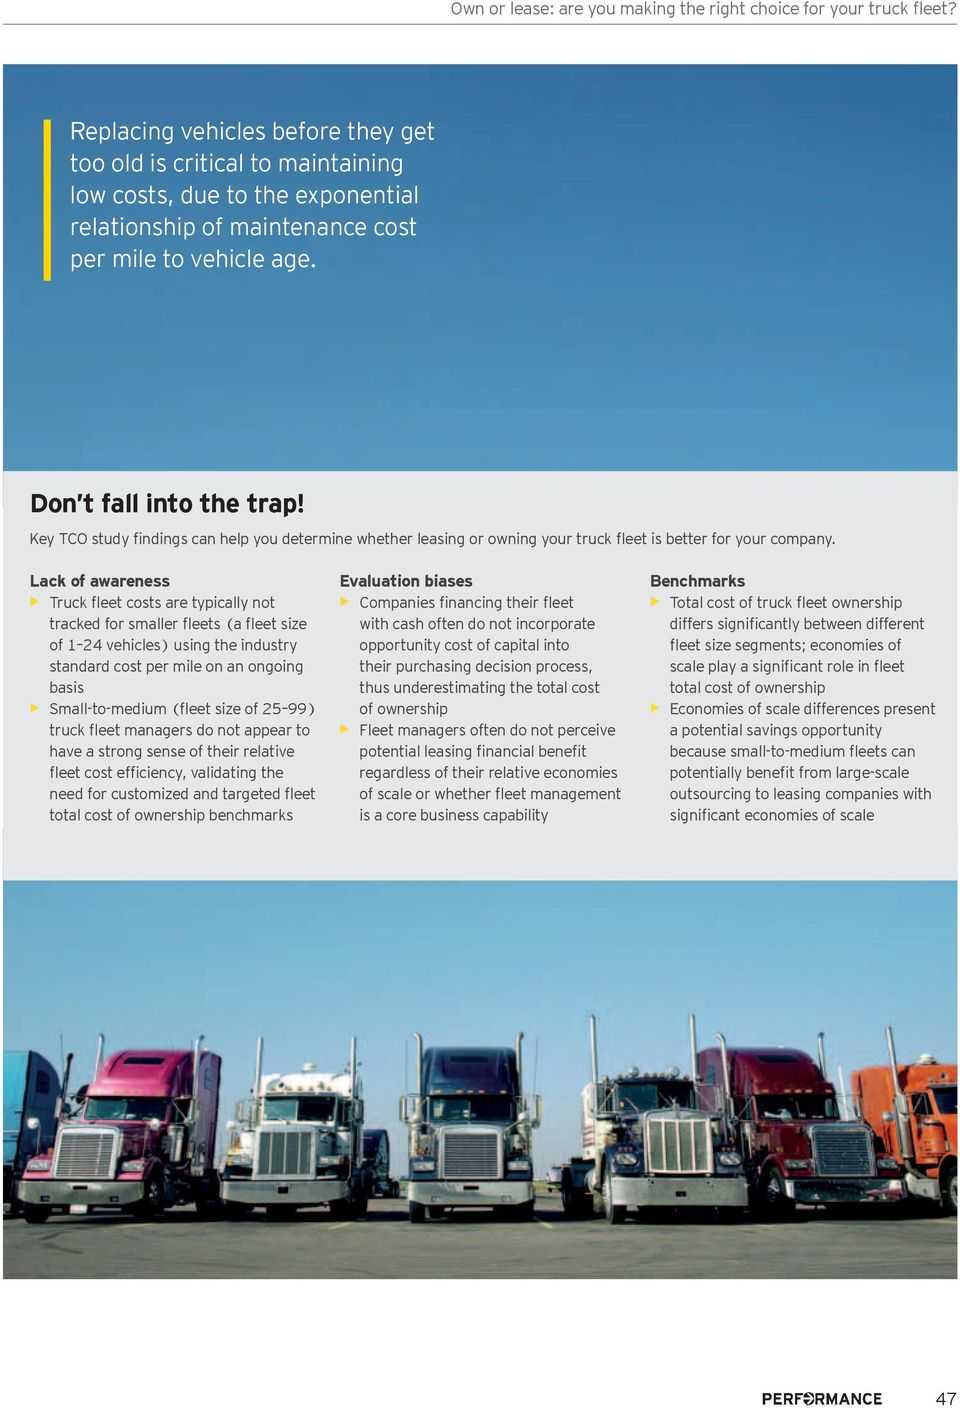 Key TCO study findings can help you determine whether leasing or owning your truck fleet is better for your company.